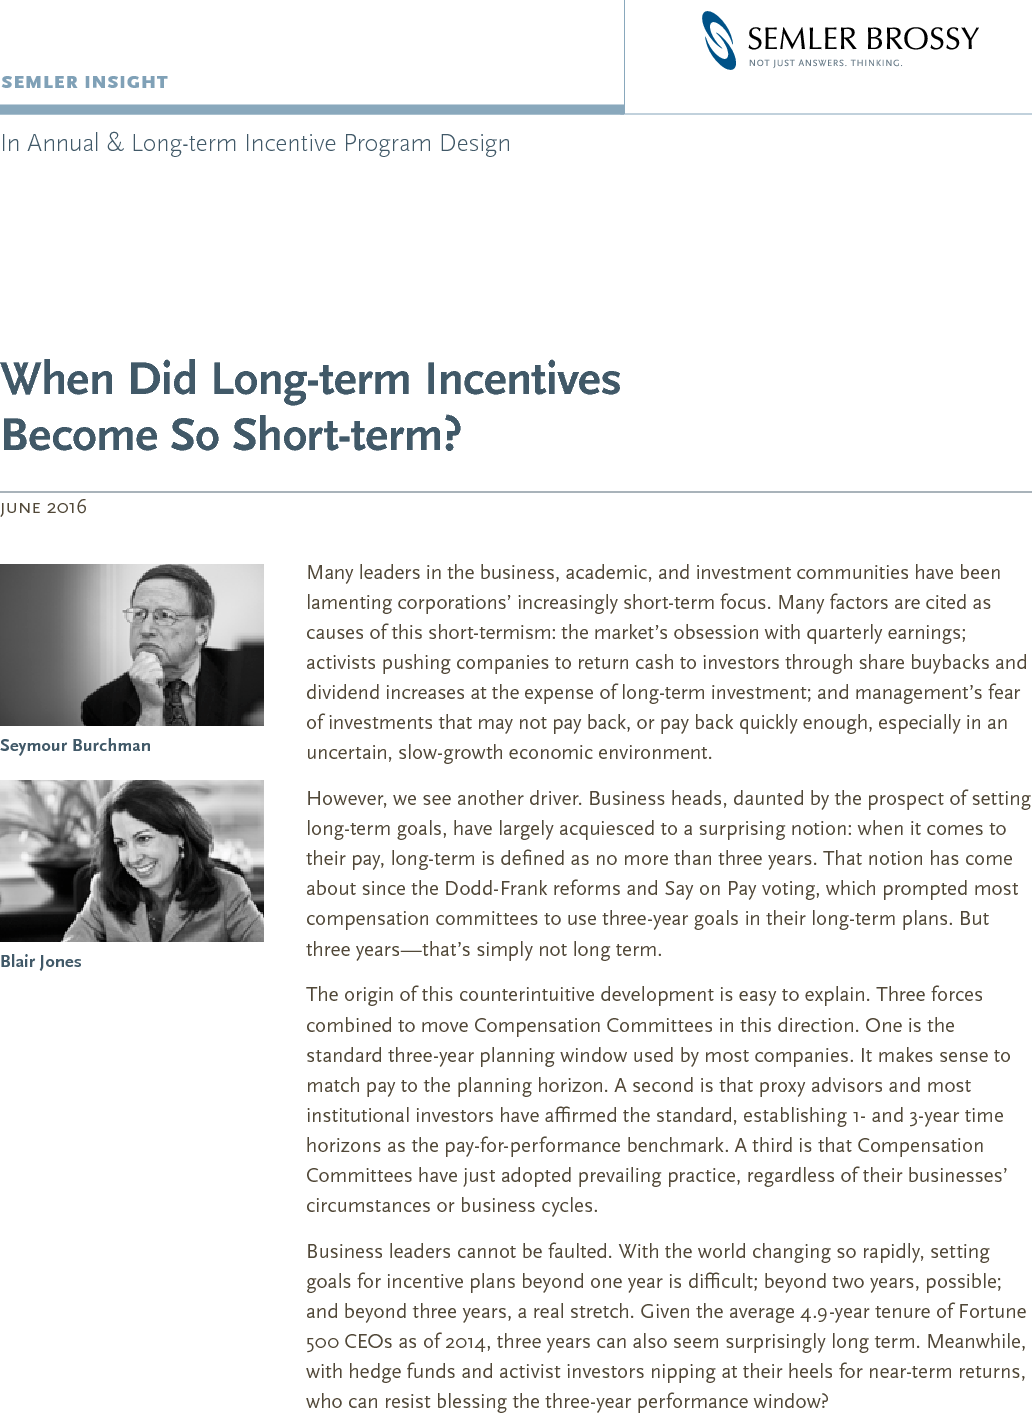 When Did Long-term Incentives Become So Short-term?